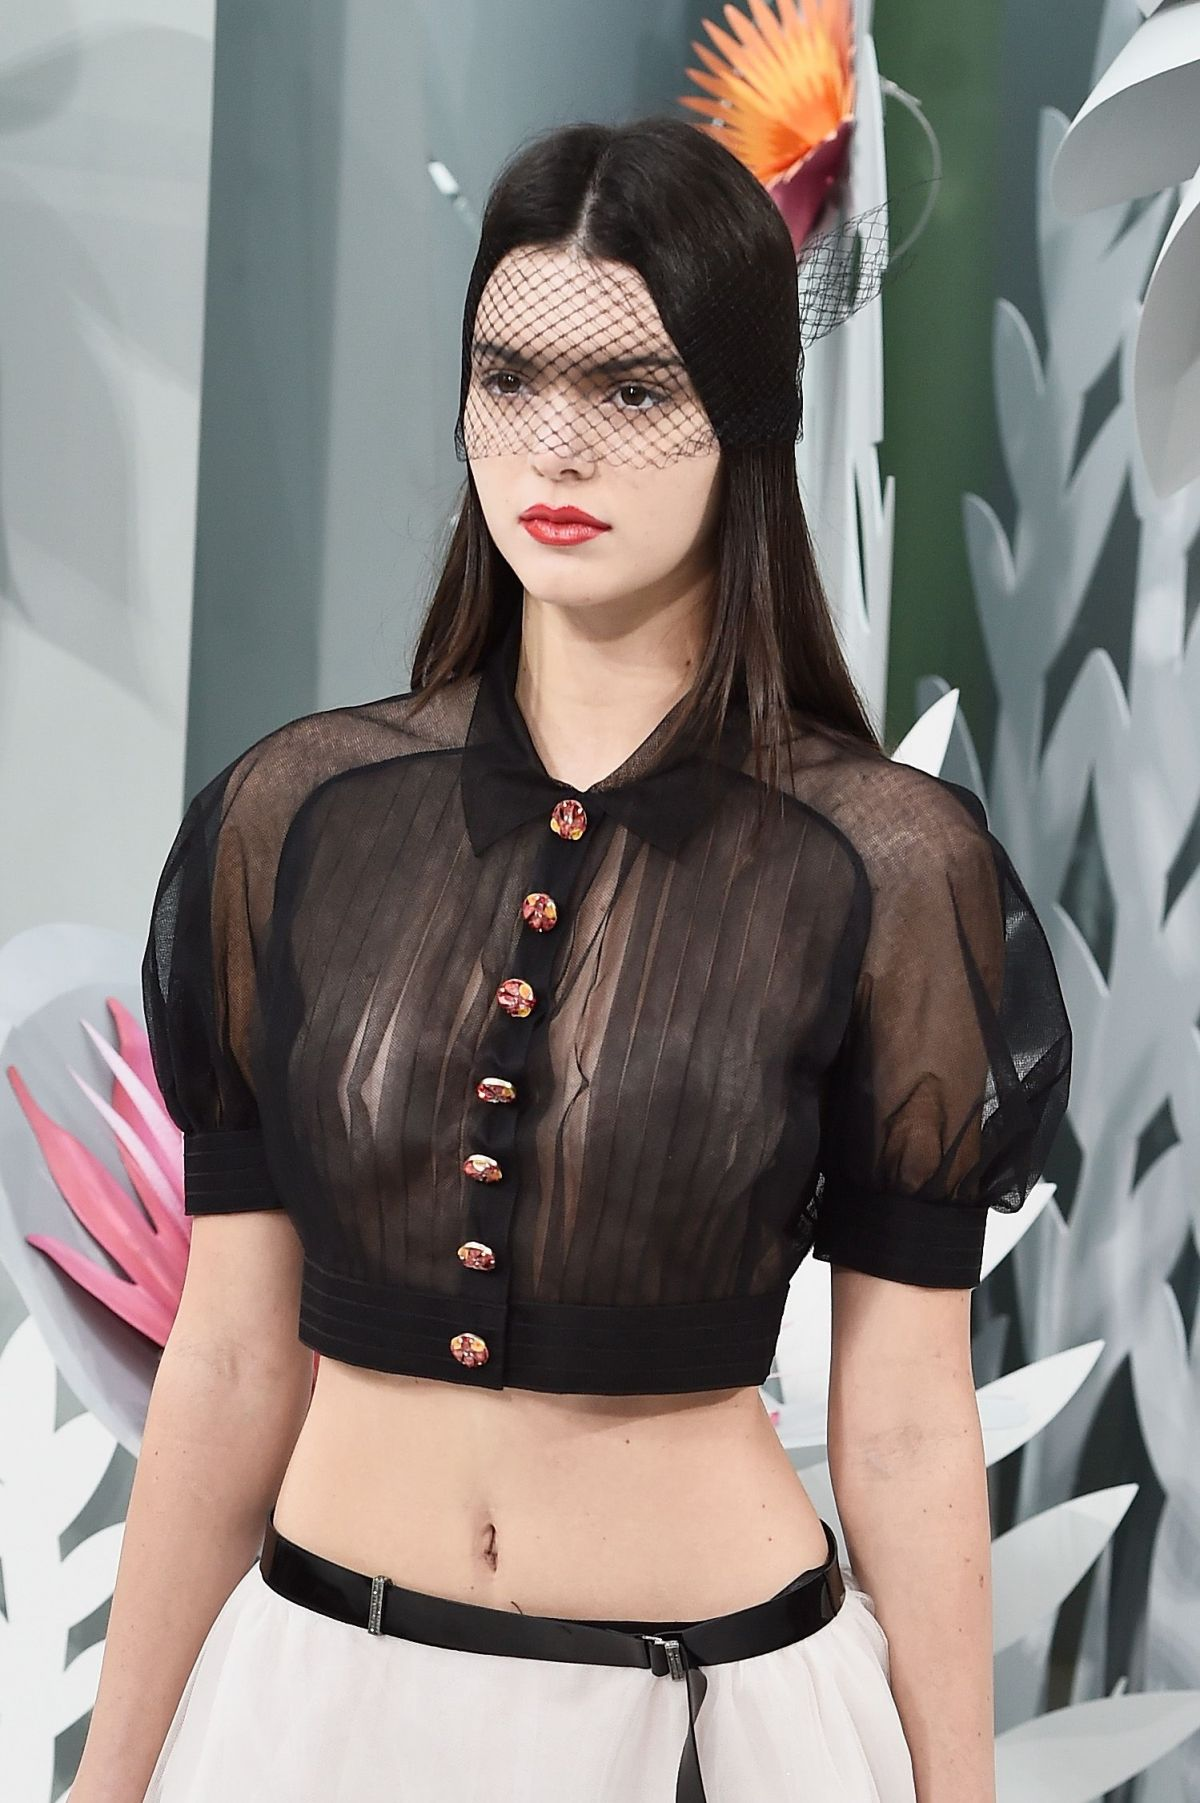 Kendall Jenner Chanel Fashion Show 2015 KENDALL JENNER on the Runway